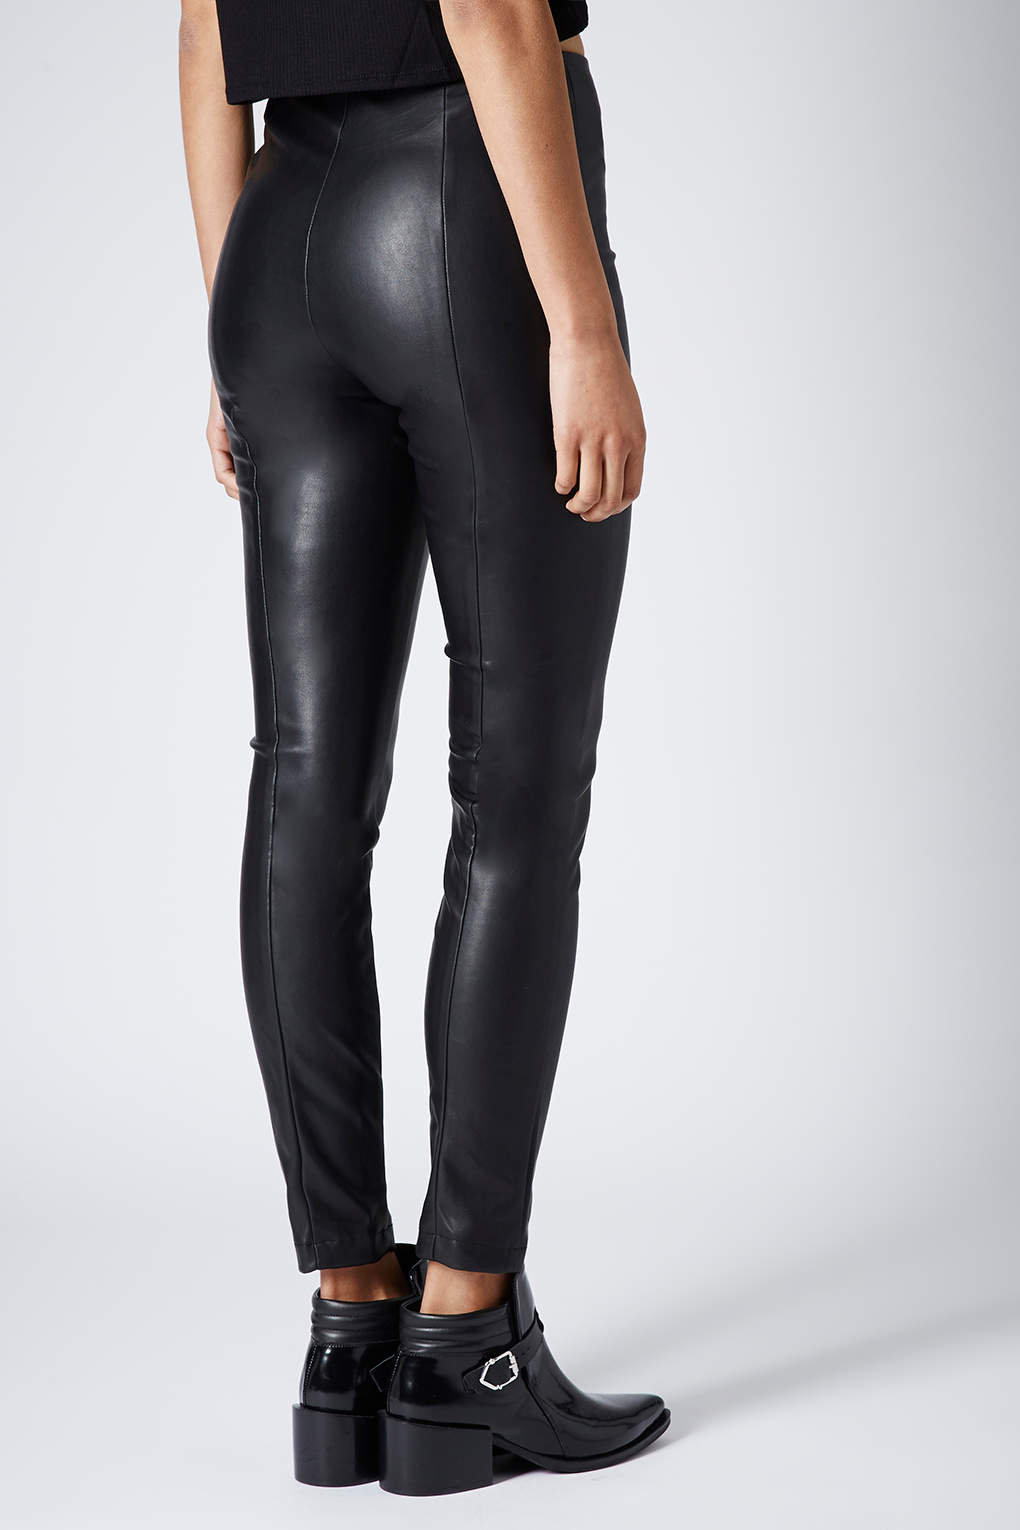 3866692deb7a TOPSHOP Super Soft Leather Look Skinny Trousers in Black - Lyst